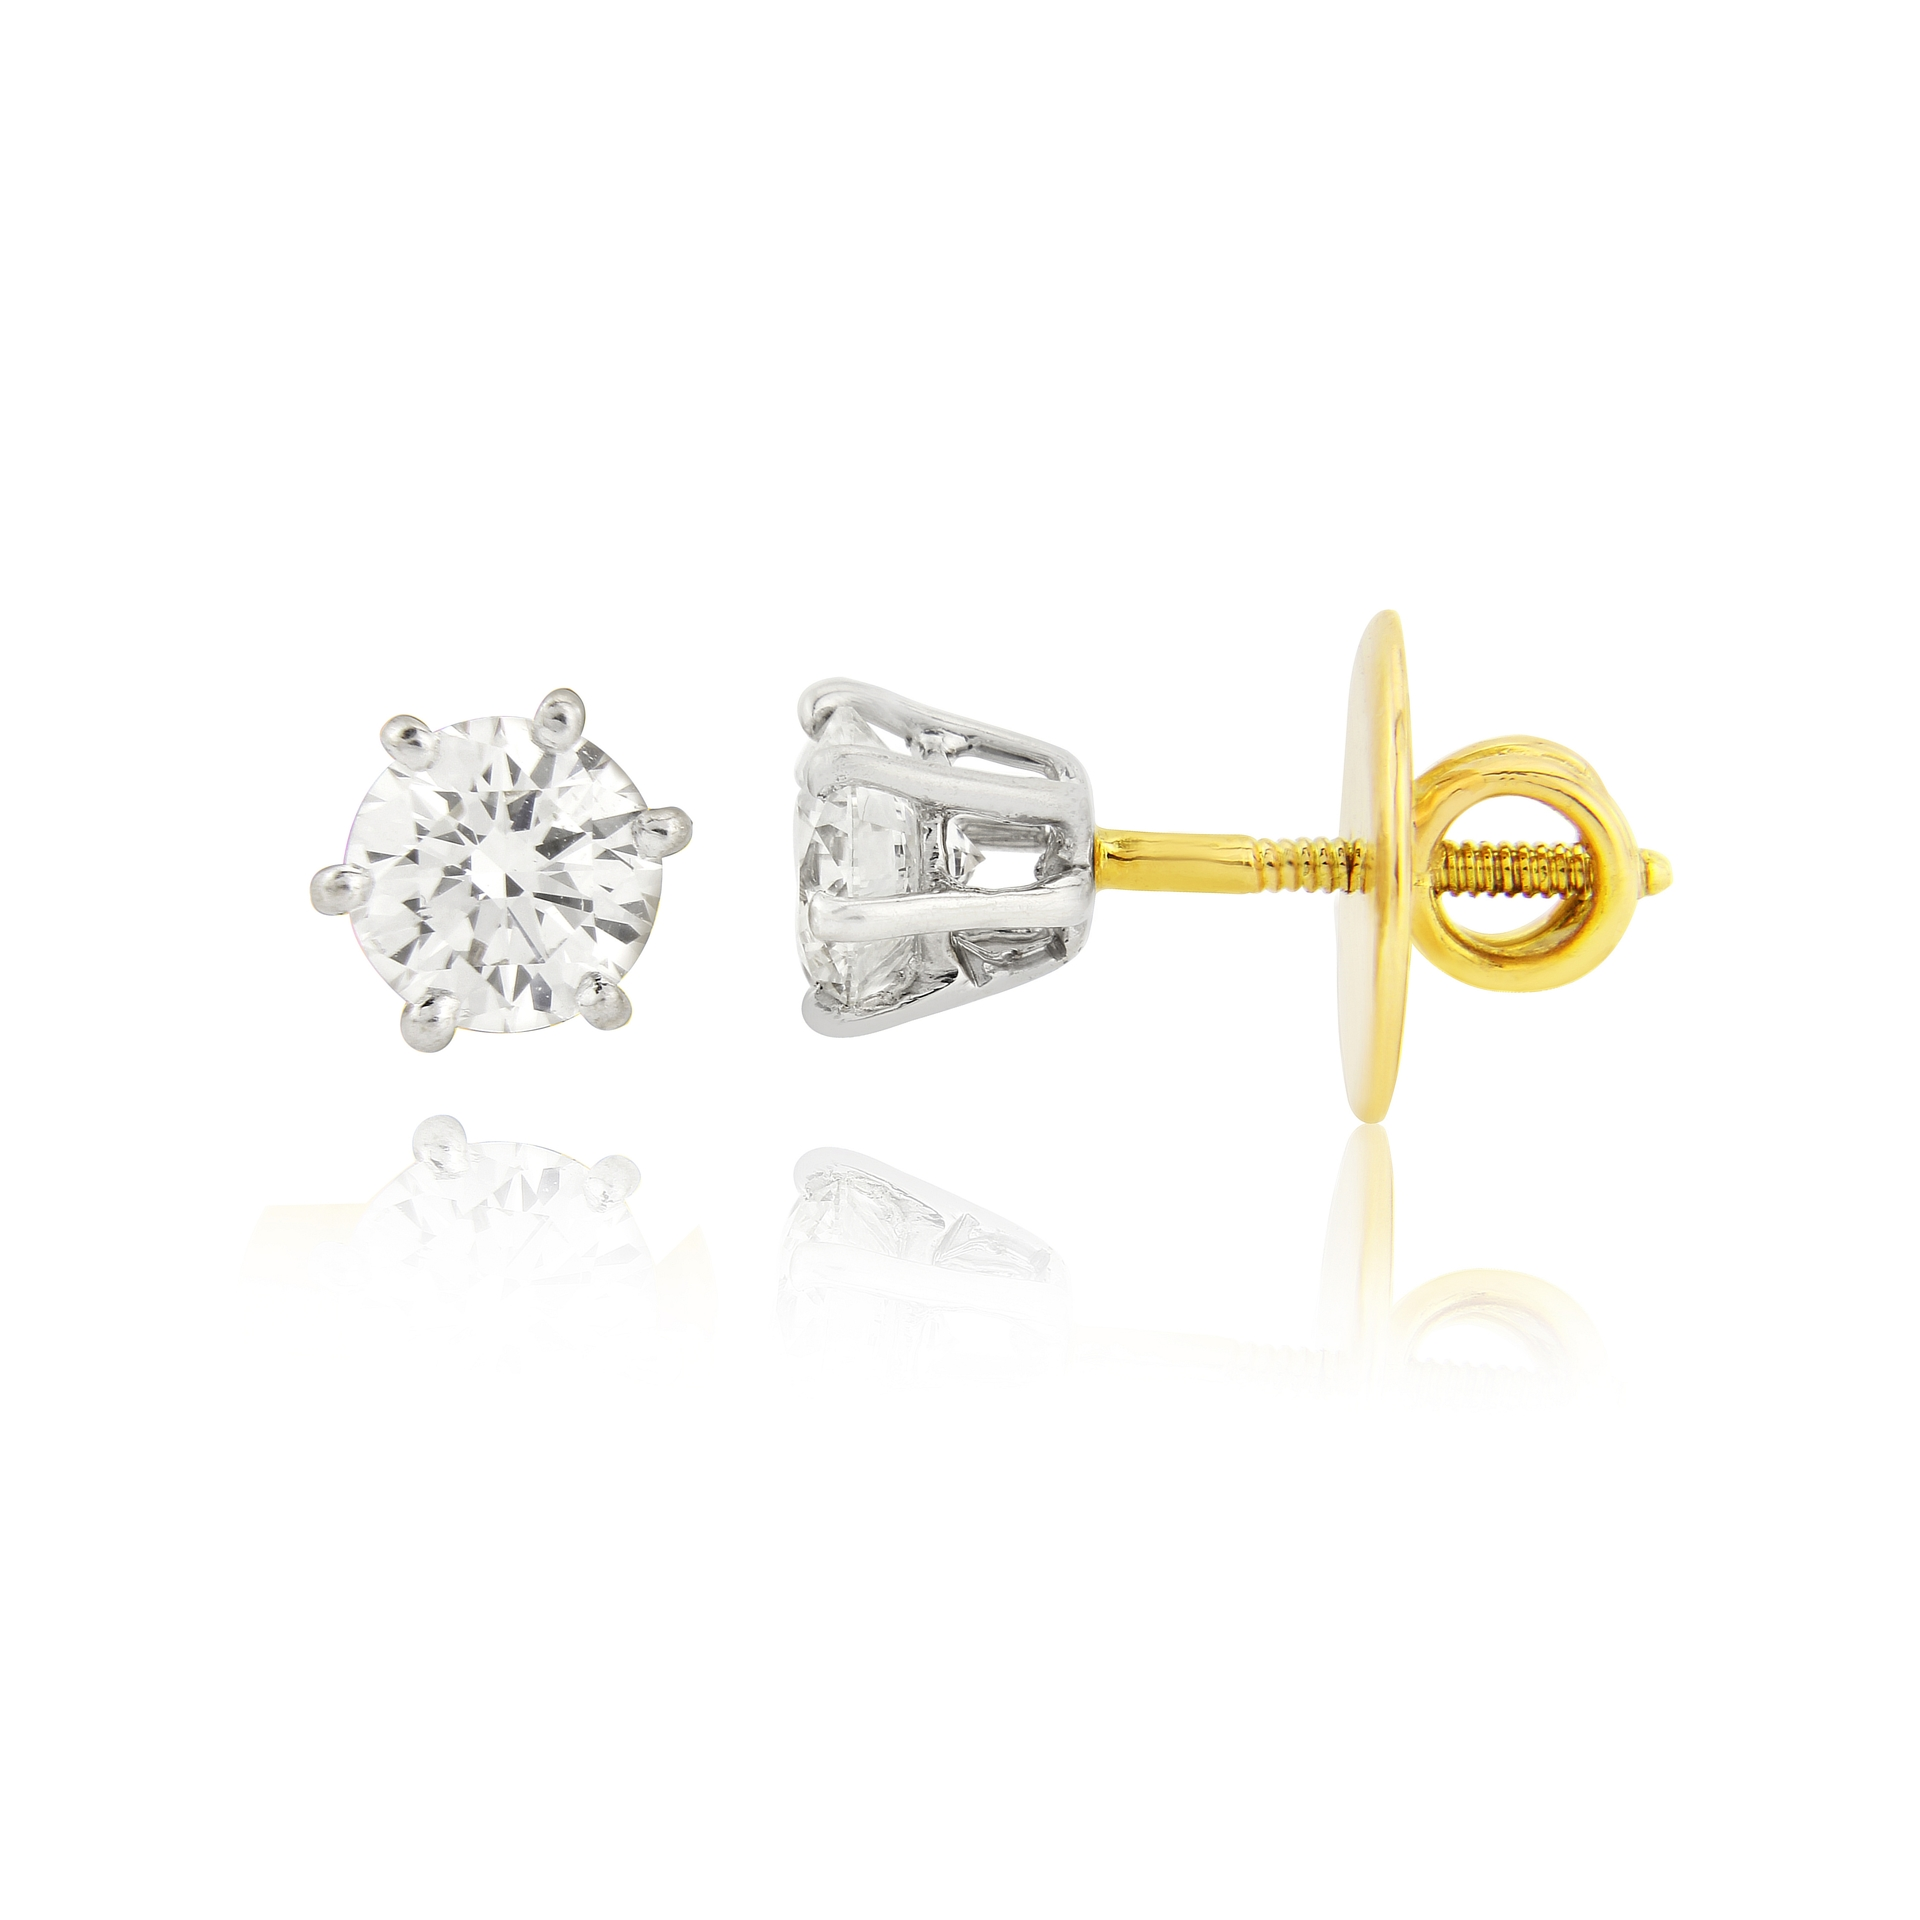 Previously Owned 14ct White and yellow gold diamond earrings